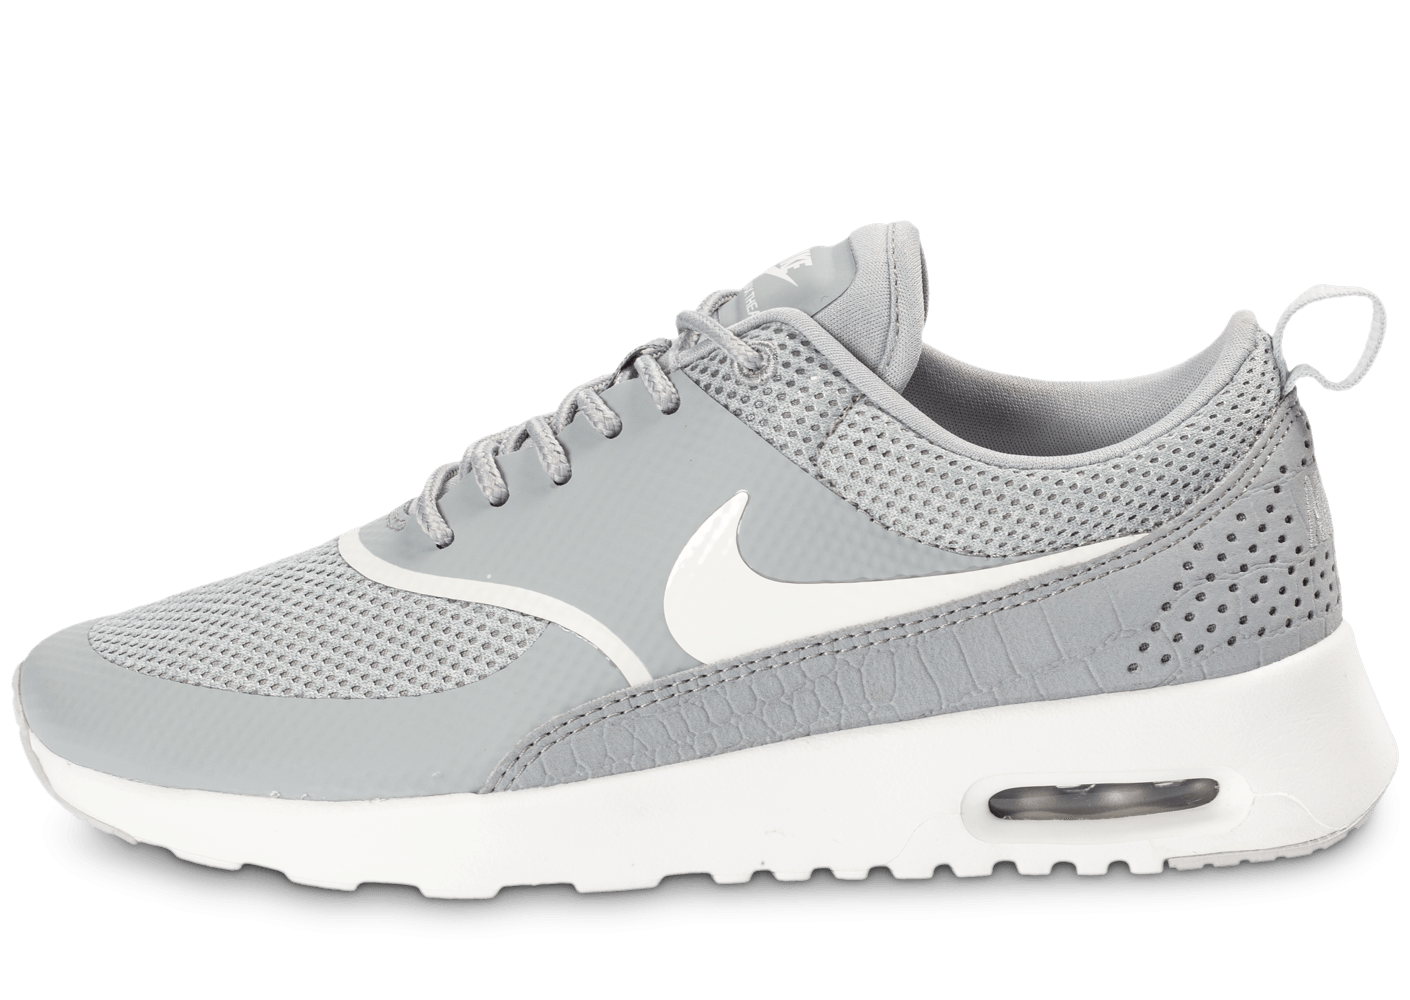 best website 04aeb 88ae2 Belle Rabais Nike Air Max Thea Femme Chaussures De Fitness  Thomasboutique OIO185423124